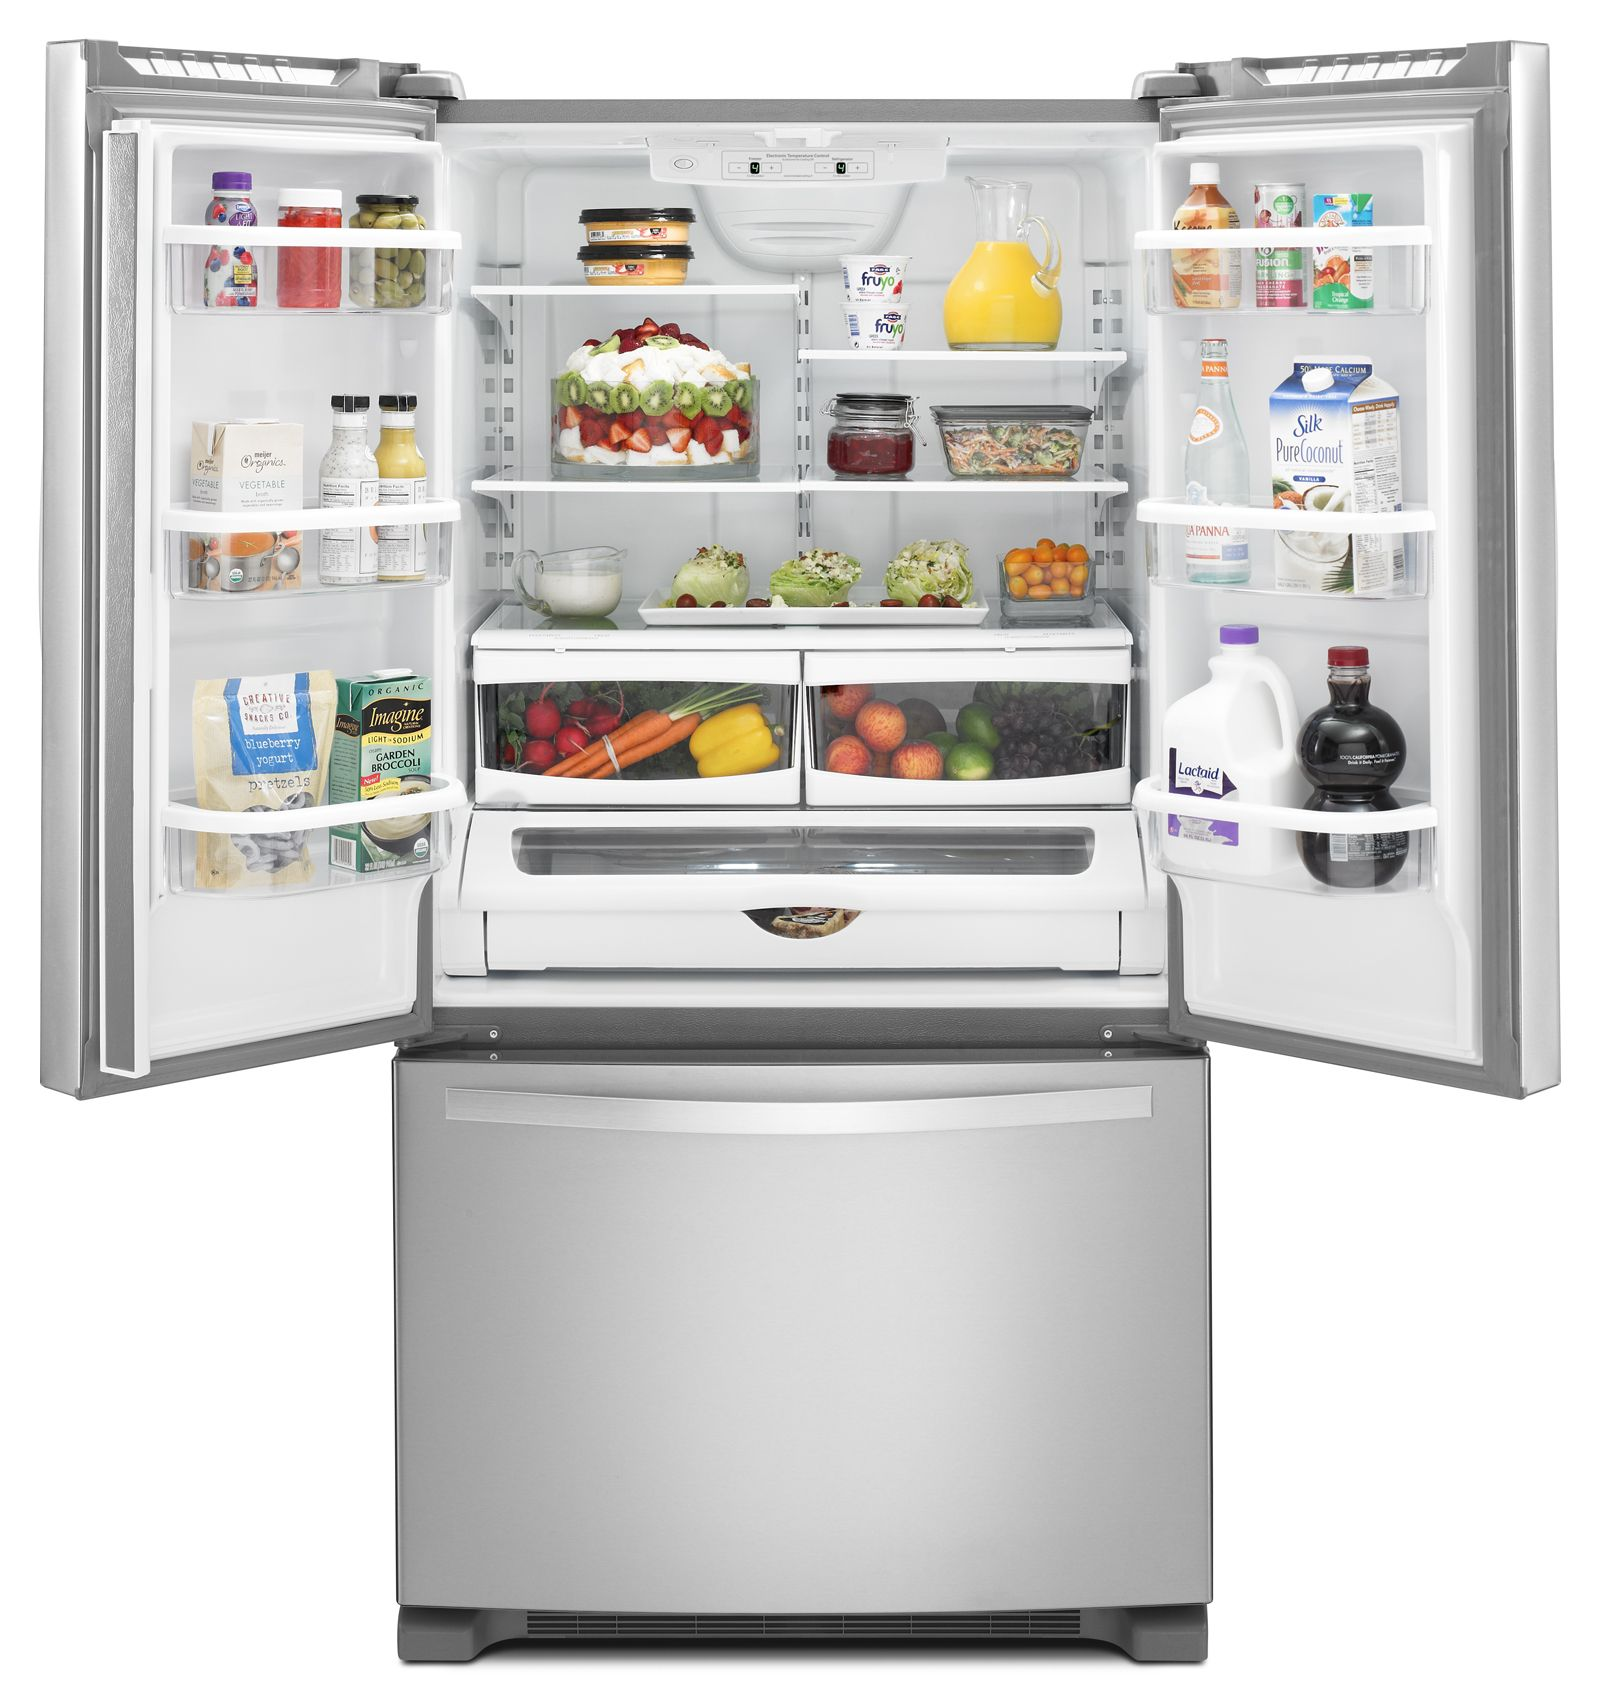 Whirlpool WRF535SMBM 25 cu ft French Door Refrigerator Stainless